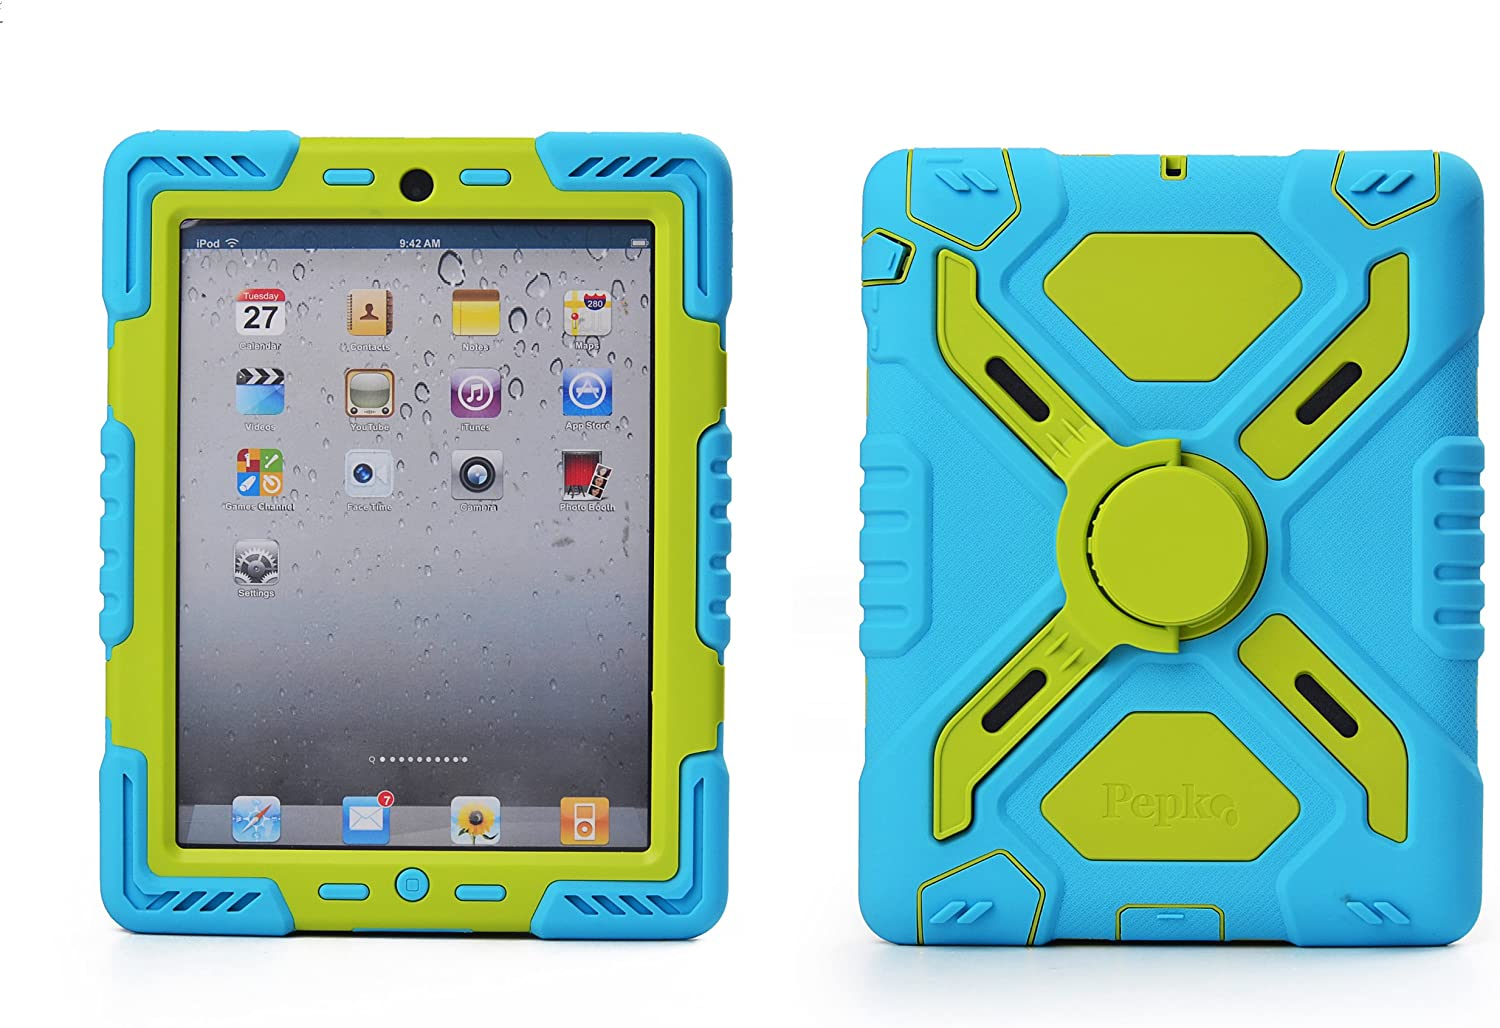 Pepkoo Ipad 2/3/4 Case Plastic Kid Proof Extreme Duty Dual Protective Back Cover with Kickstand and Sticker for Ipad 4/3/2 - Rainproof Sandproof Dust-Proof Shockproof (Blue/Green)